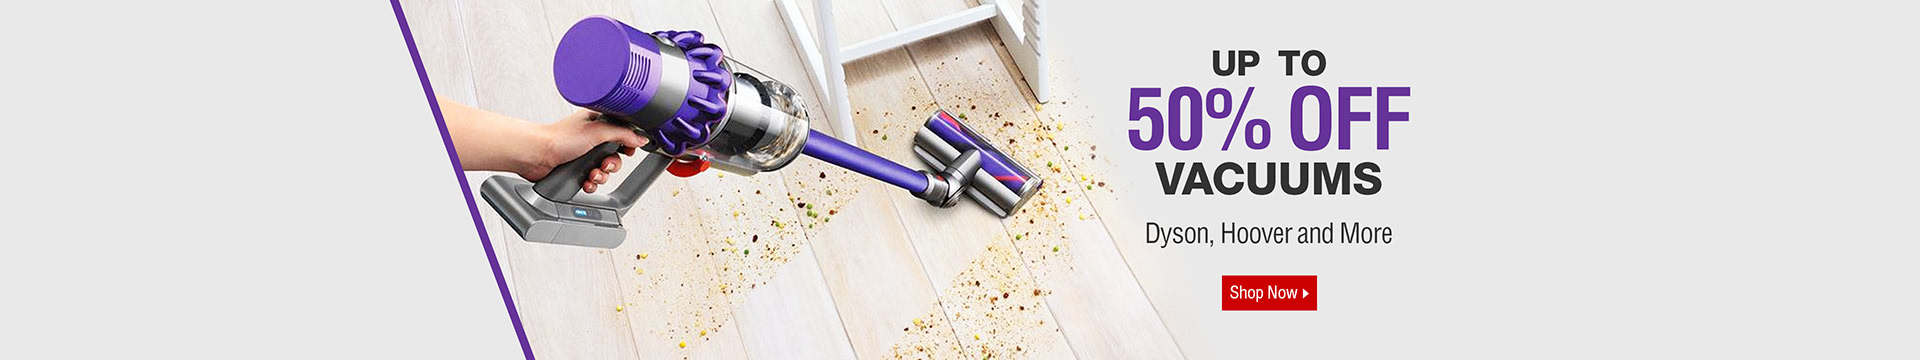 Up to 50% off Vacuums